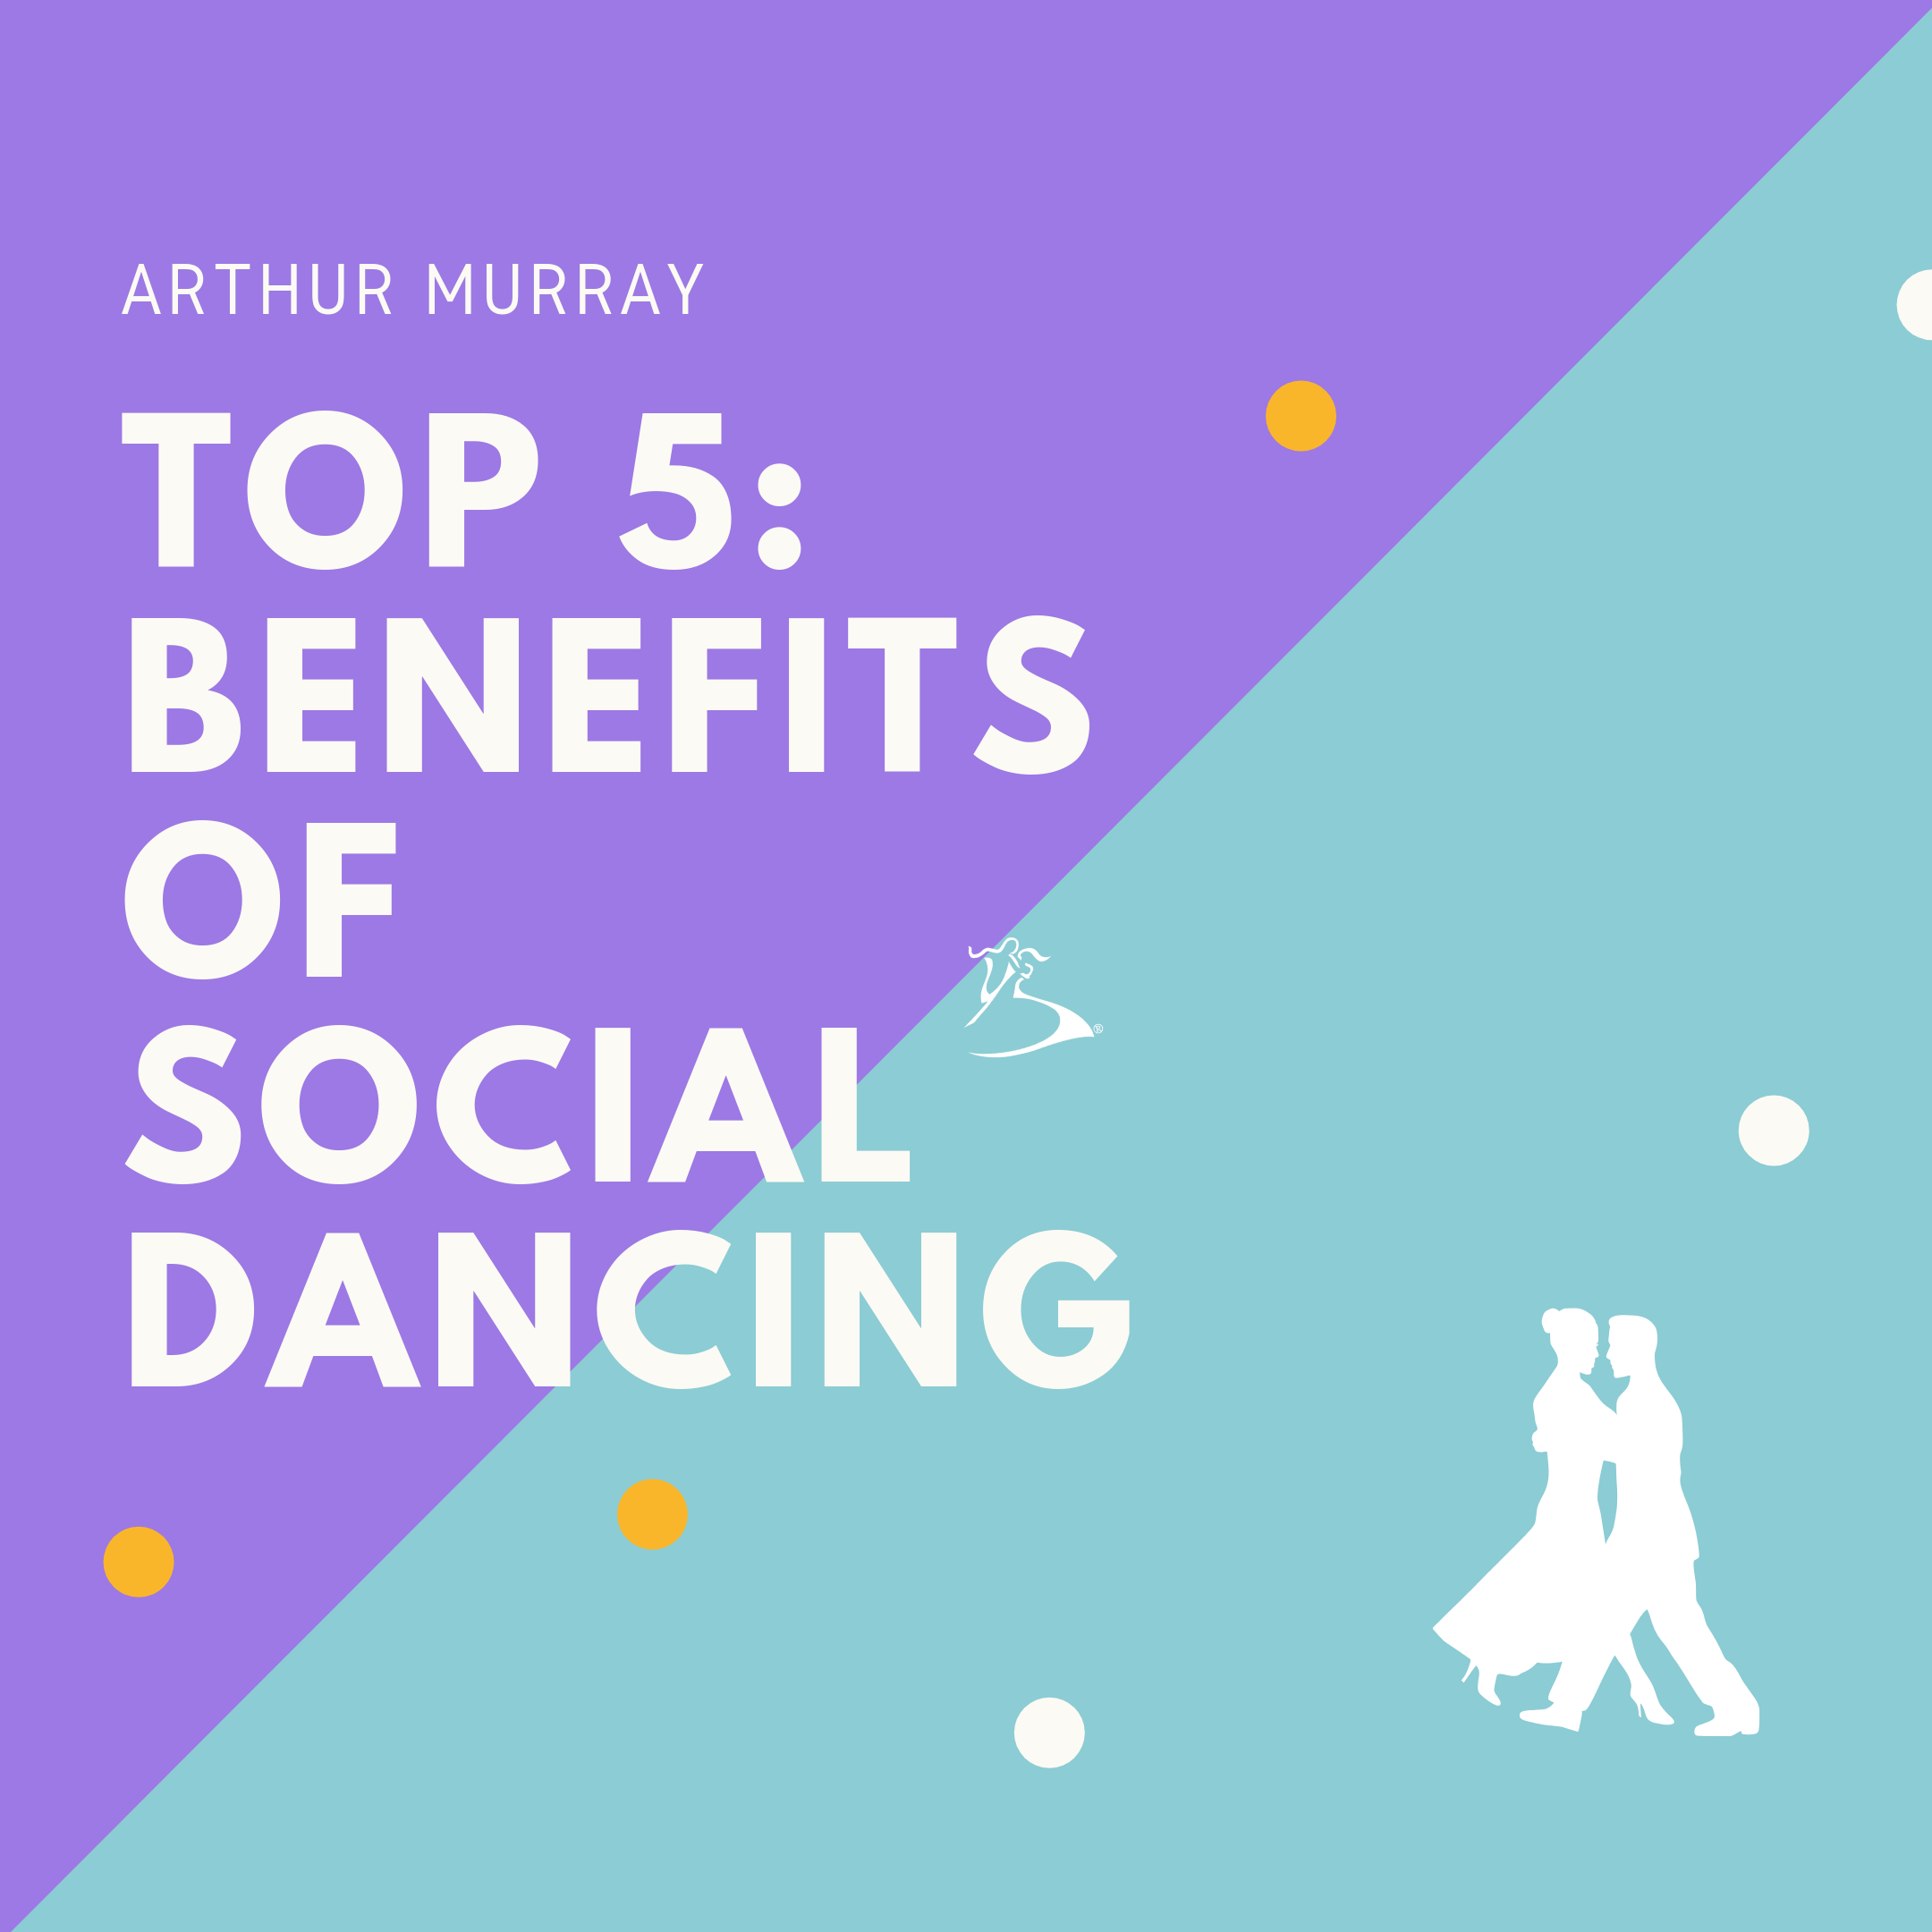 Top 5 Benefits  Of  Social dancing.png